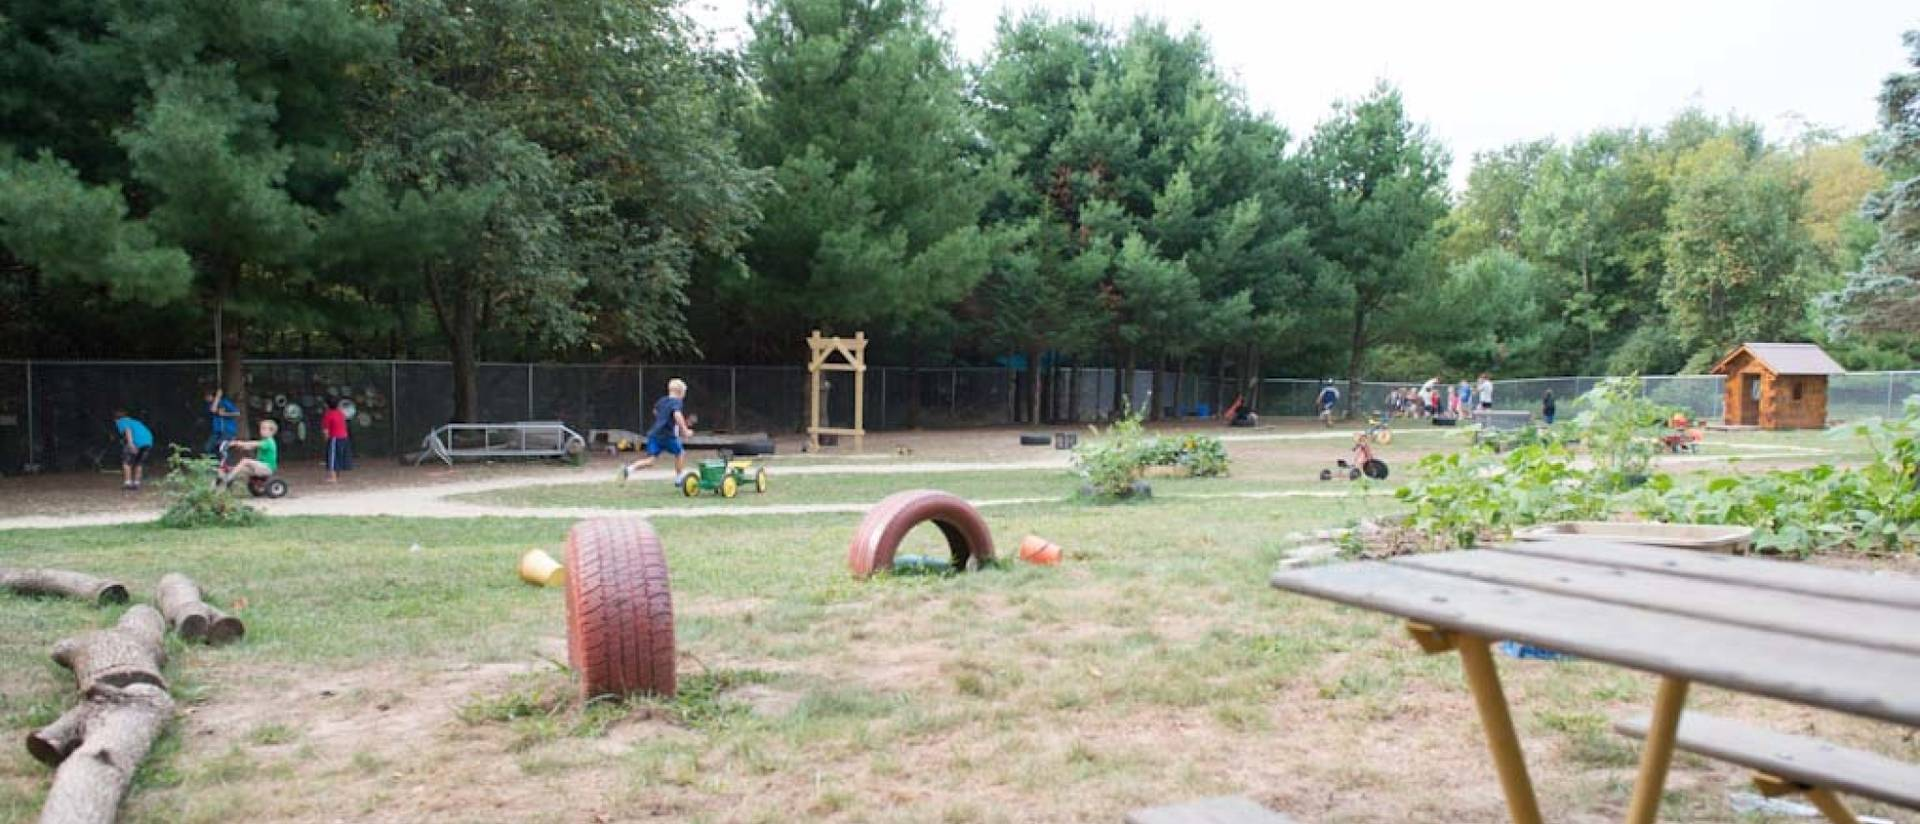 Children's Nature Academy Playground